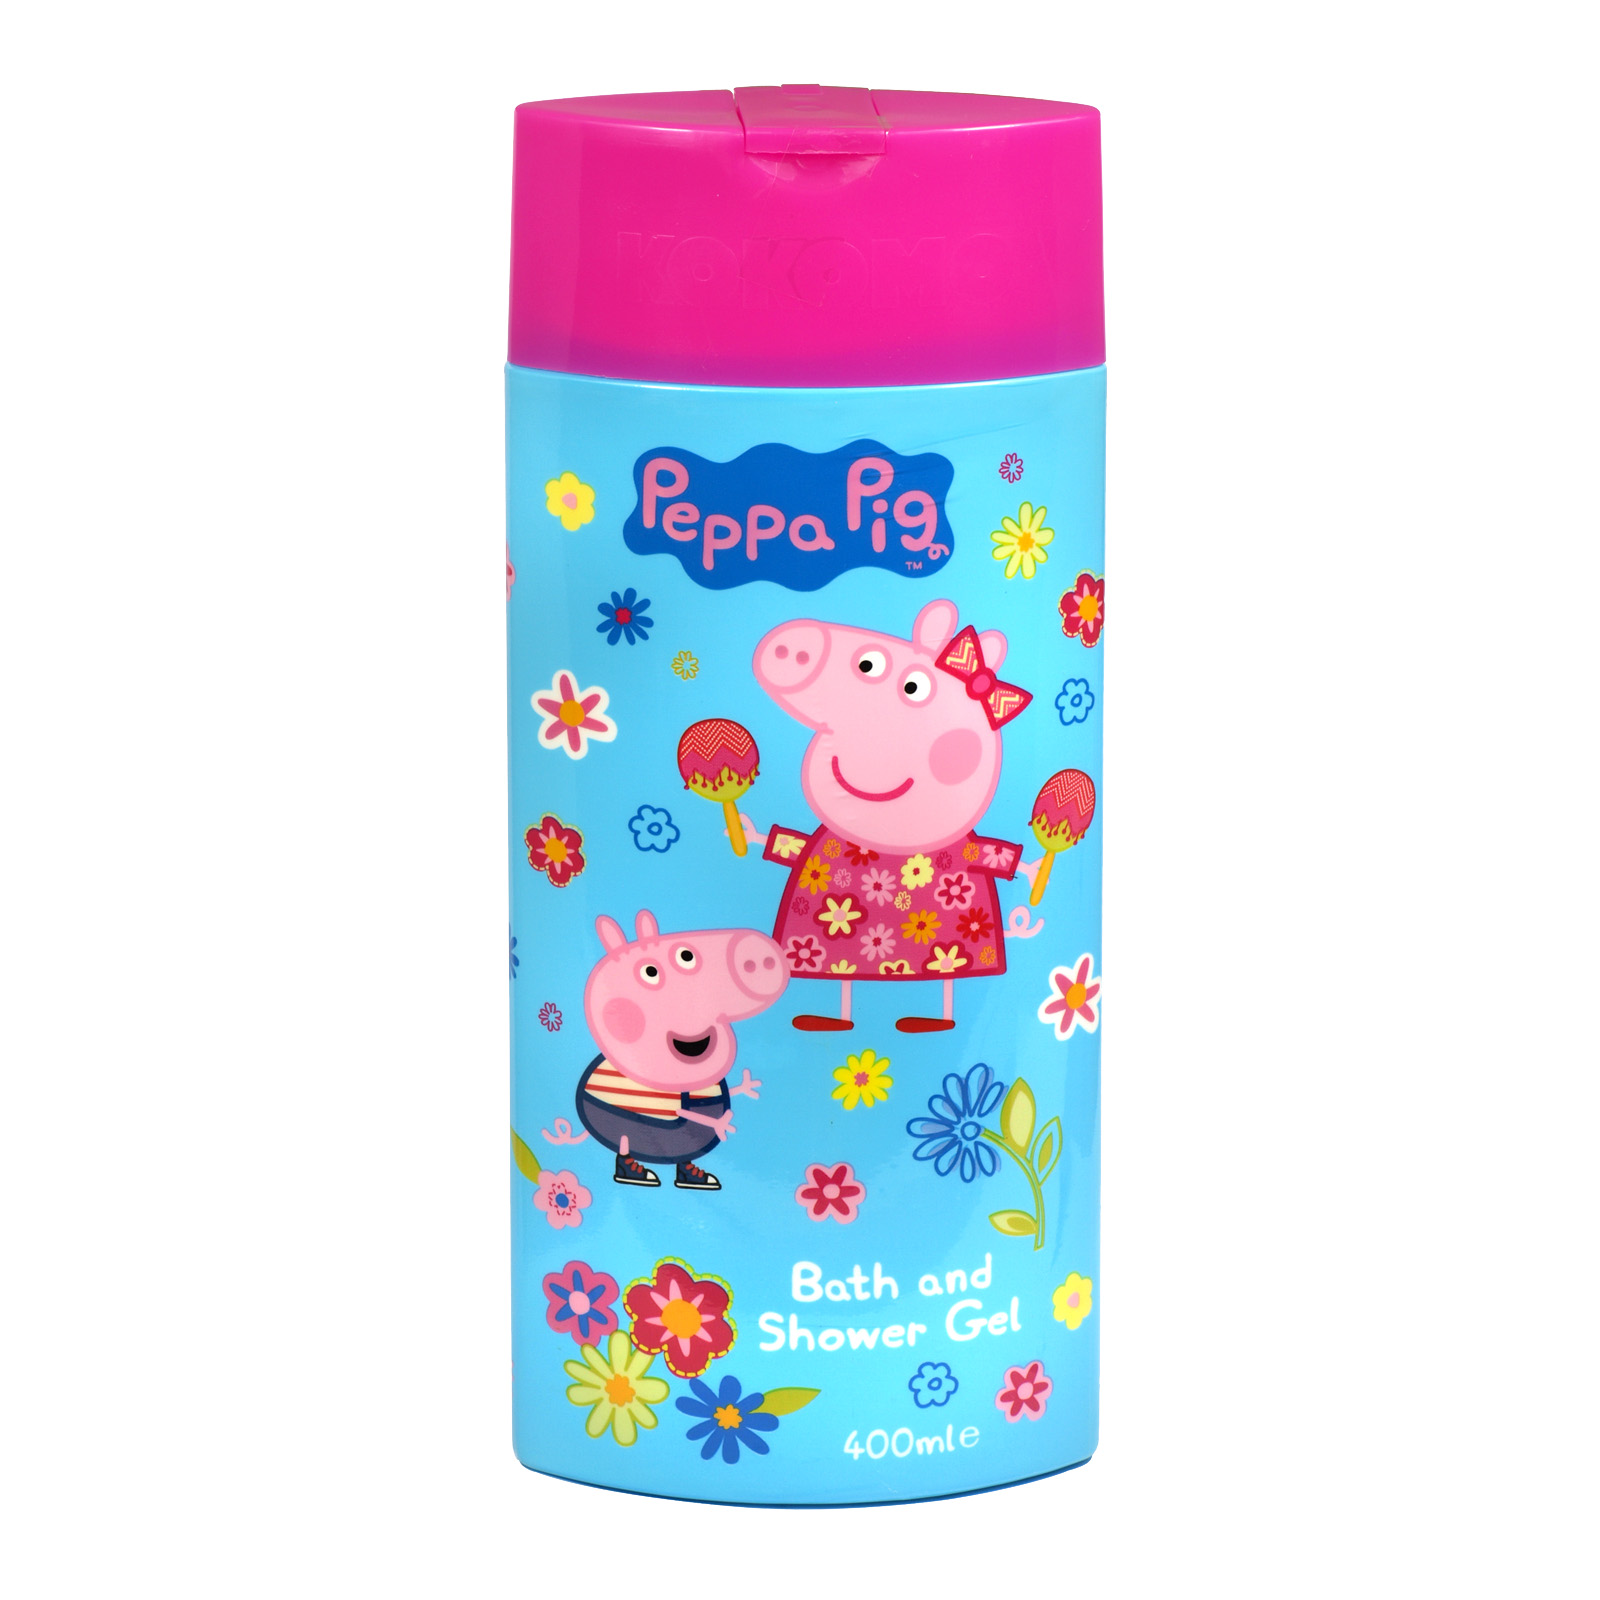 PEPPA PIG 400ML BATH & SHOWER GEL